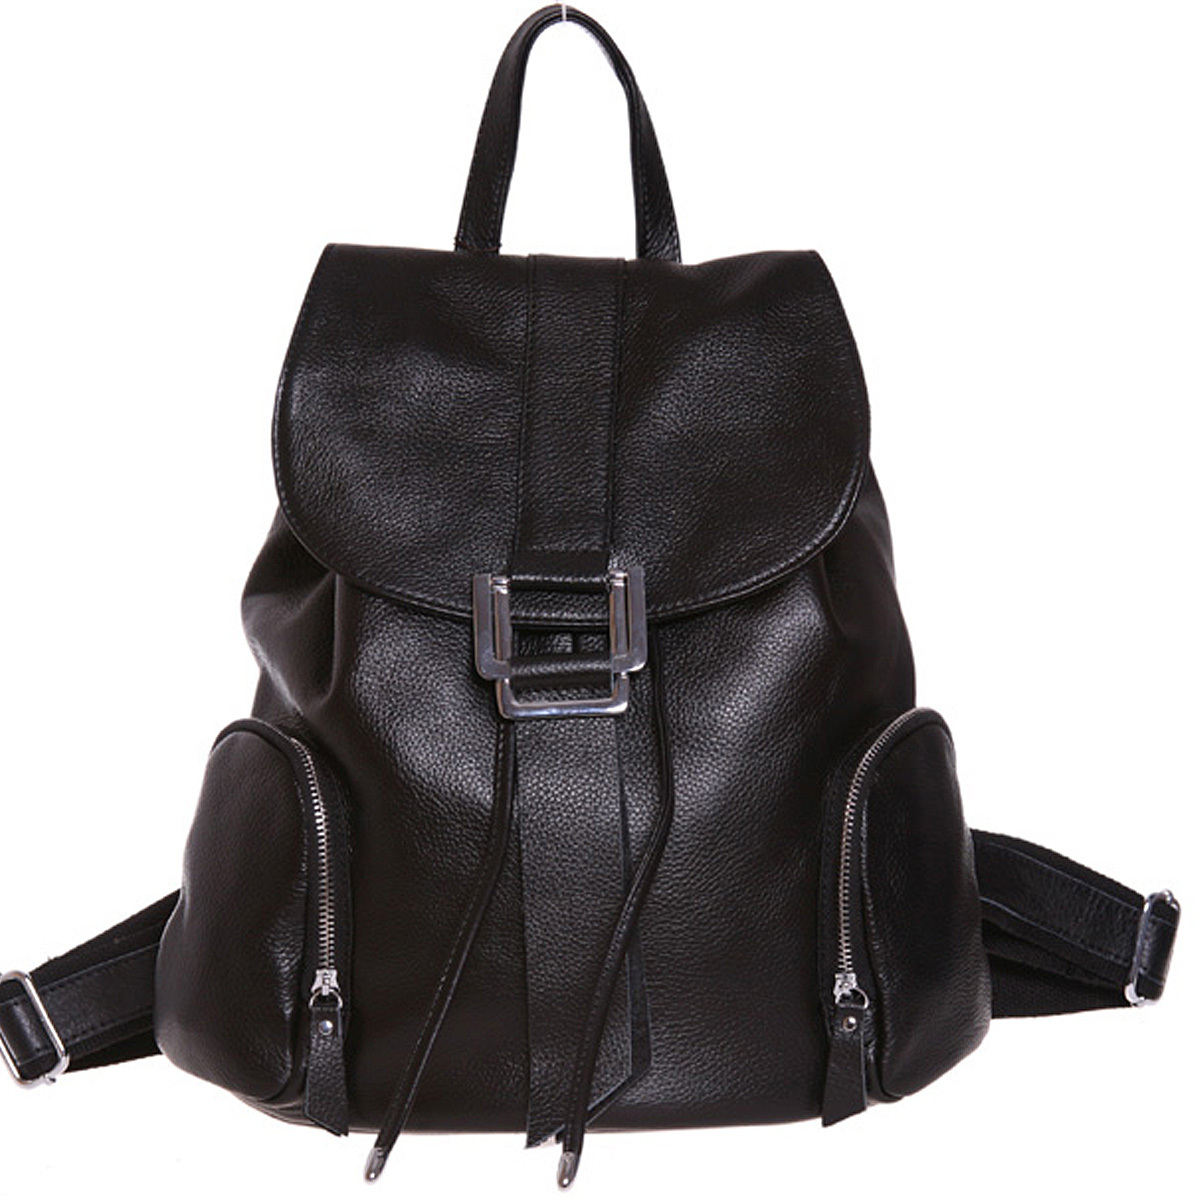 Black Leather Backpack Women cR30HKS4